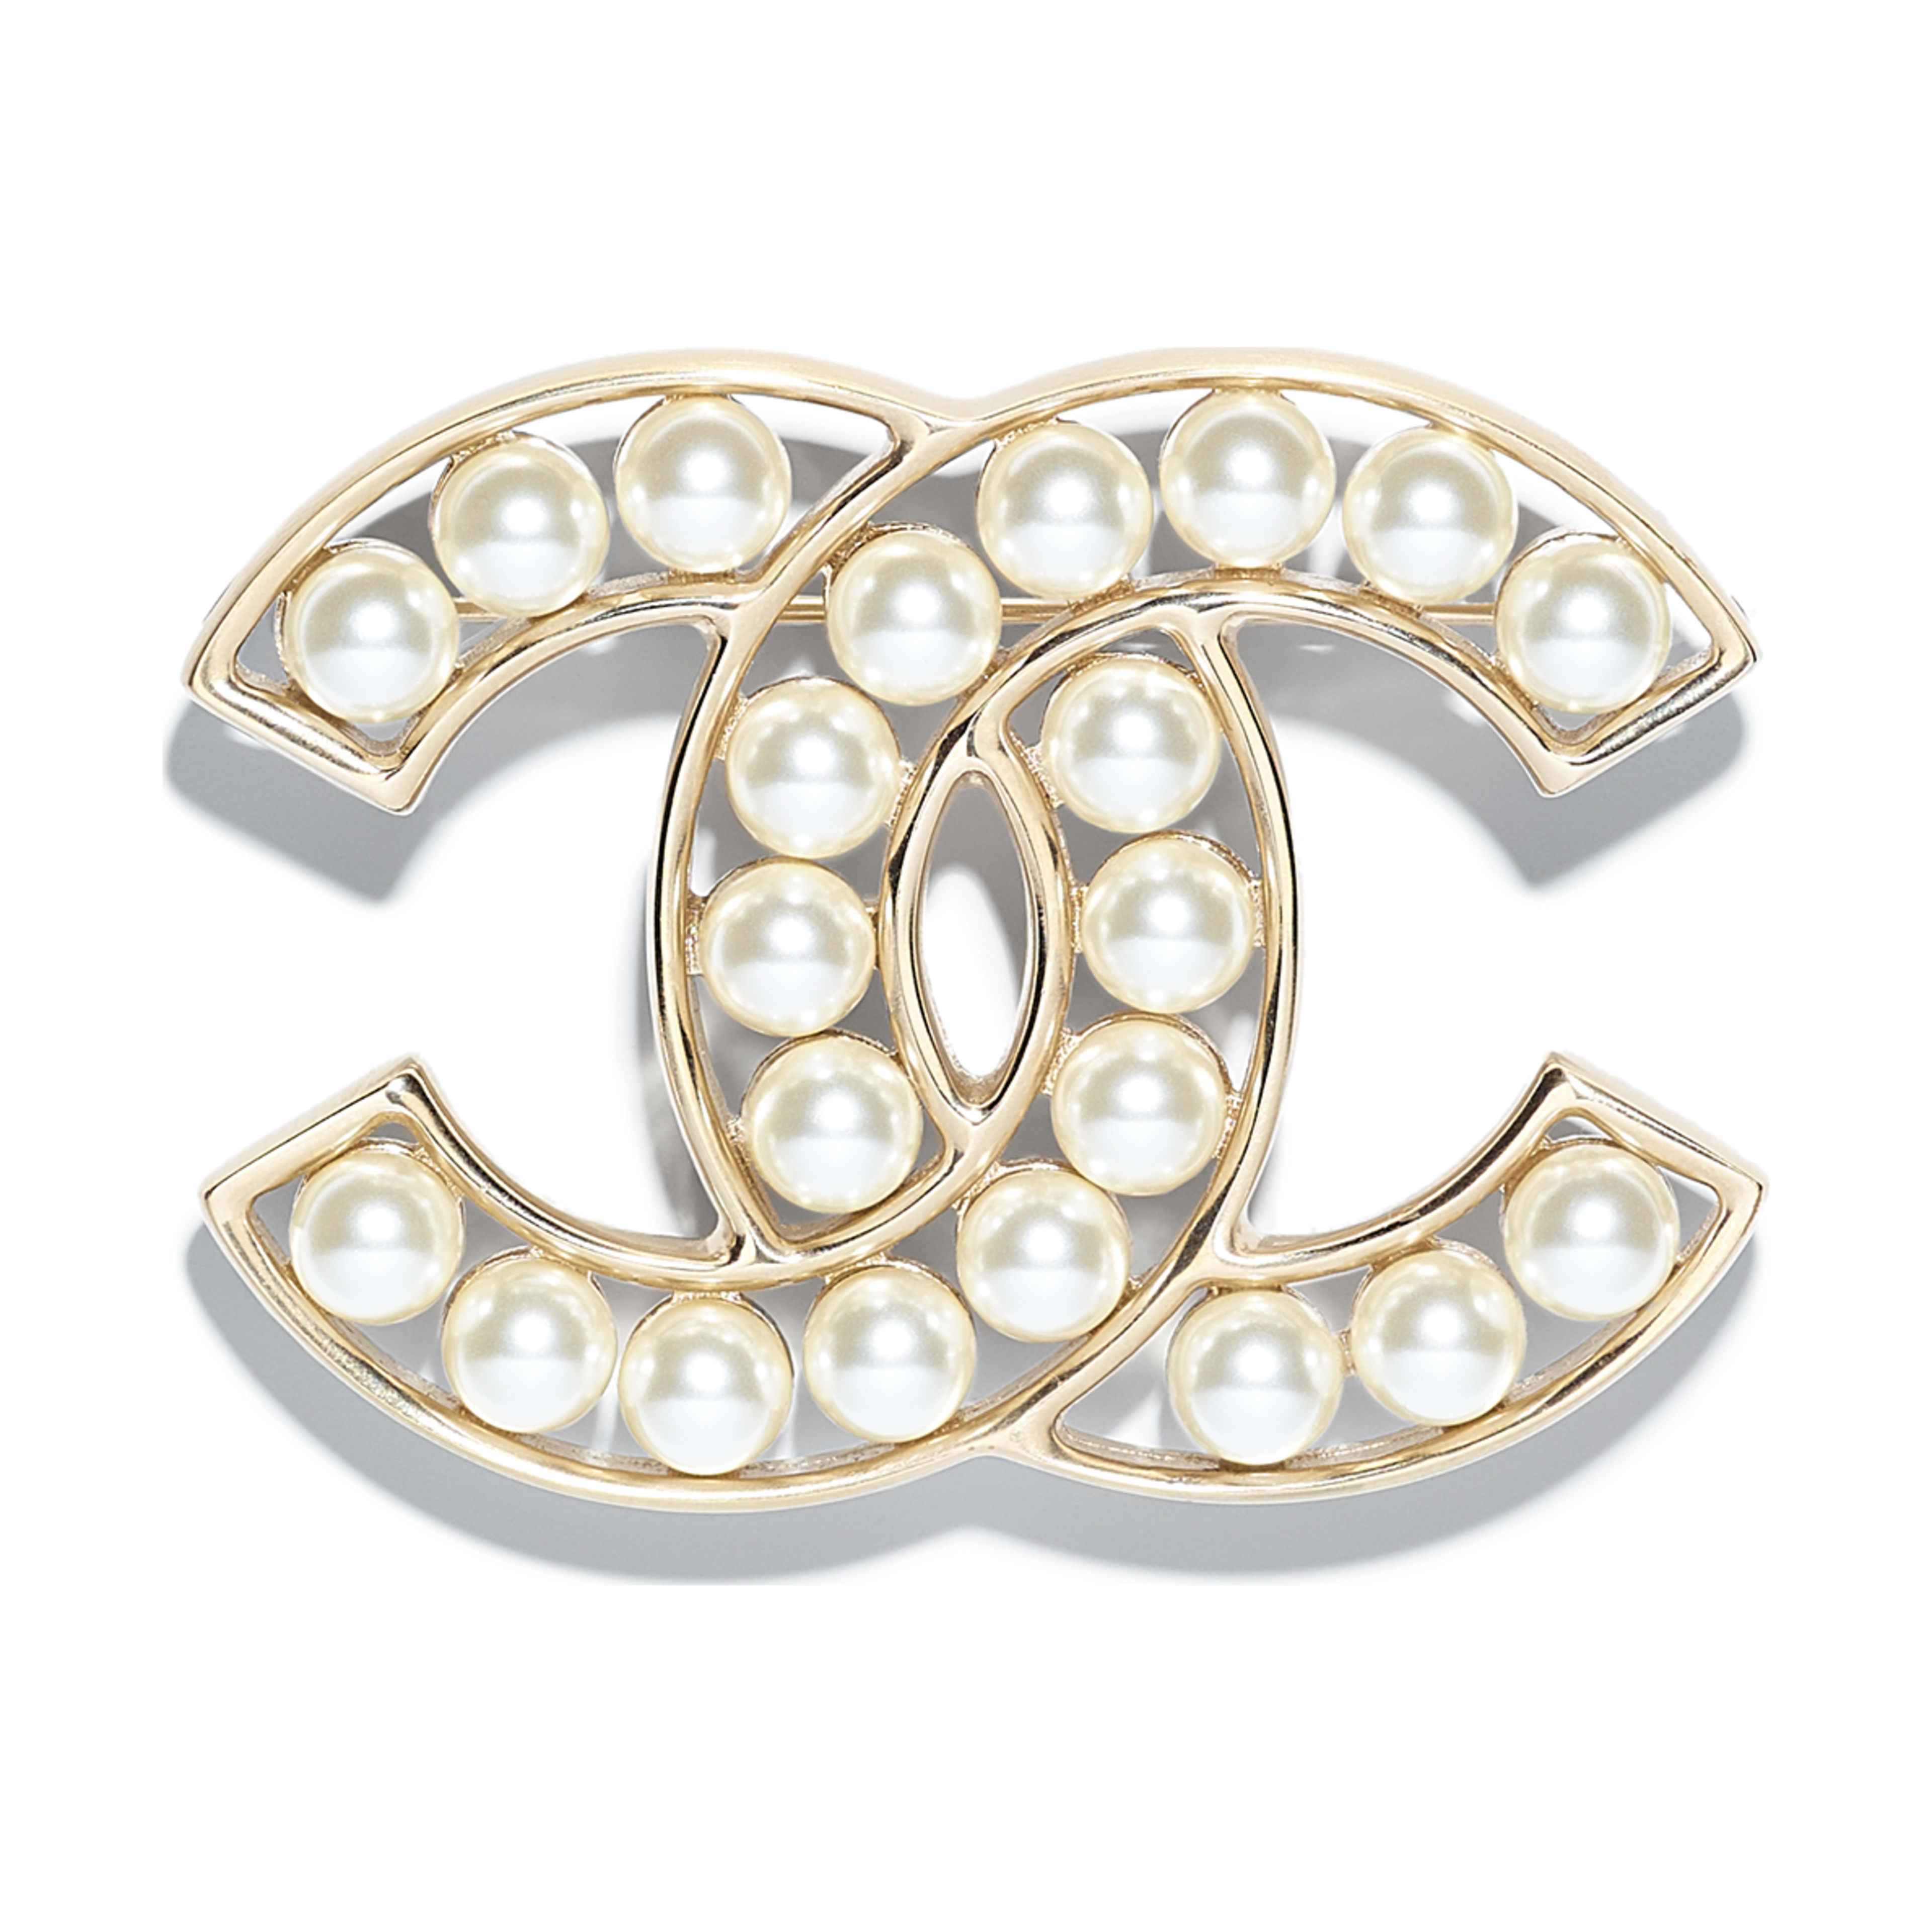 bas prix fréquent modèle unique Metal Glass Pearls Gold Pearly White Brooch | CHANEL